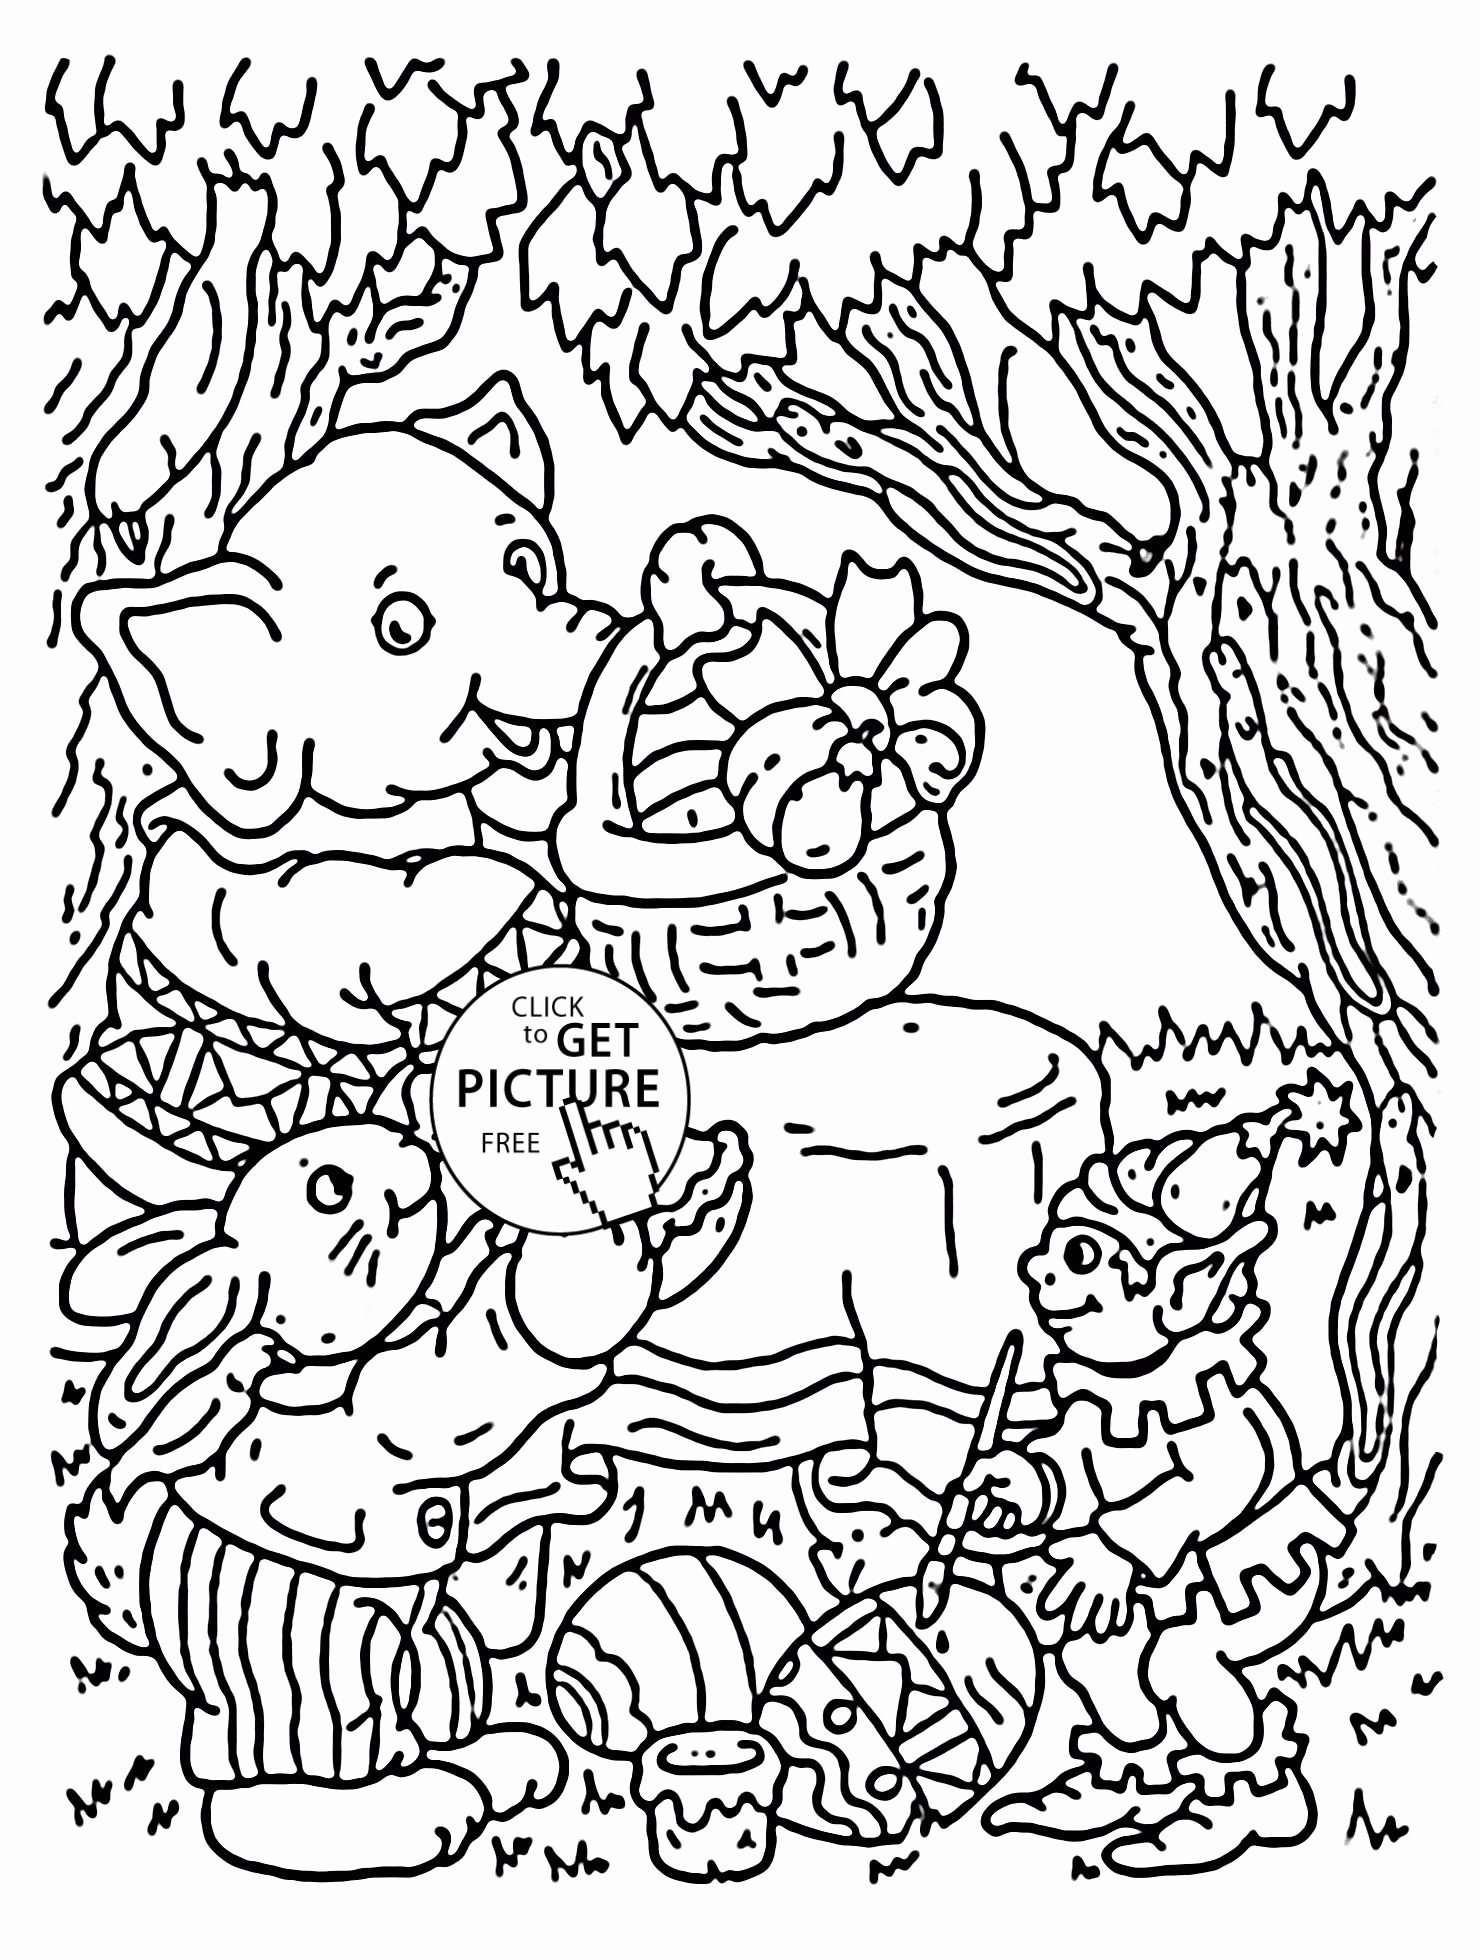 lisa frank unicorn coloring pages Download-Coloring Pages Mermaids Printable Coloring Pages Wedding 2-l